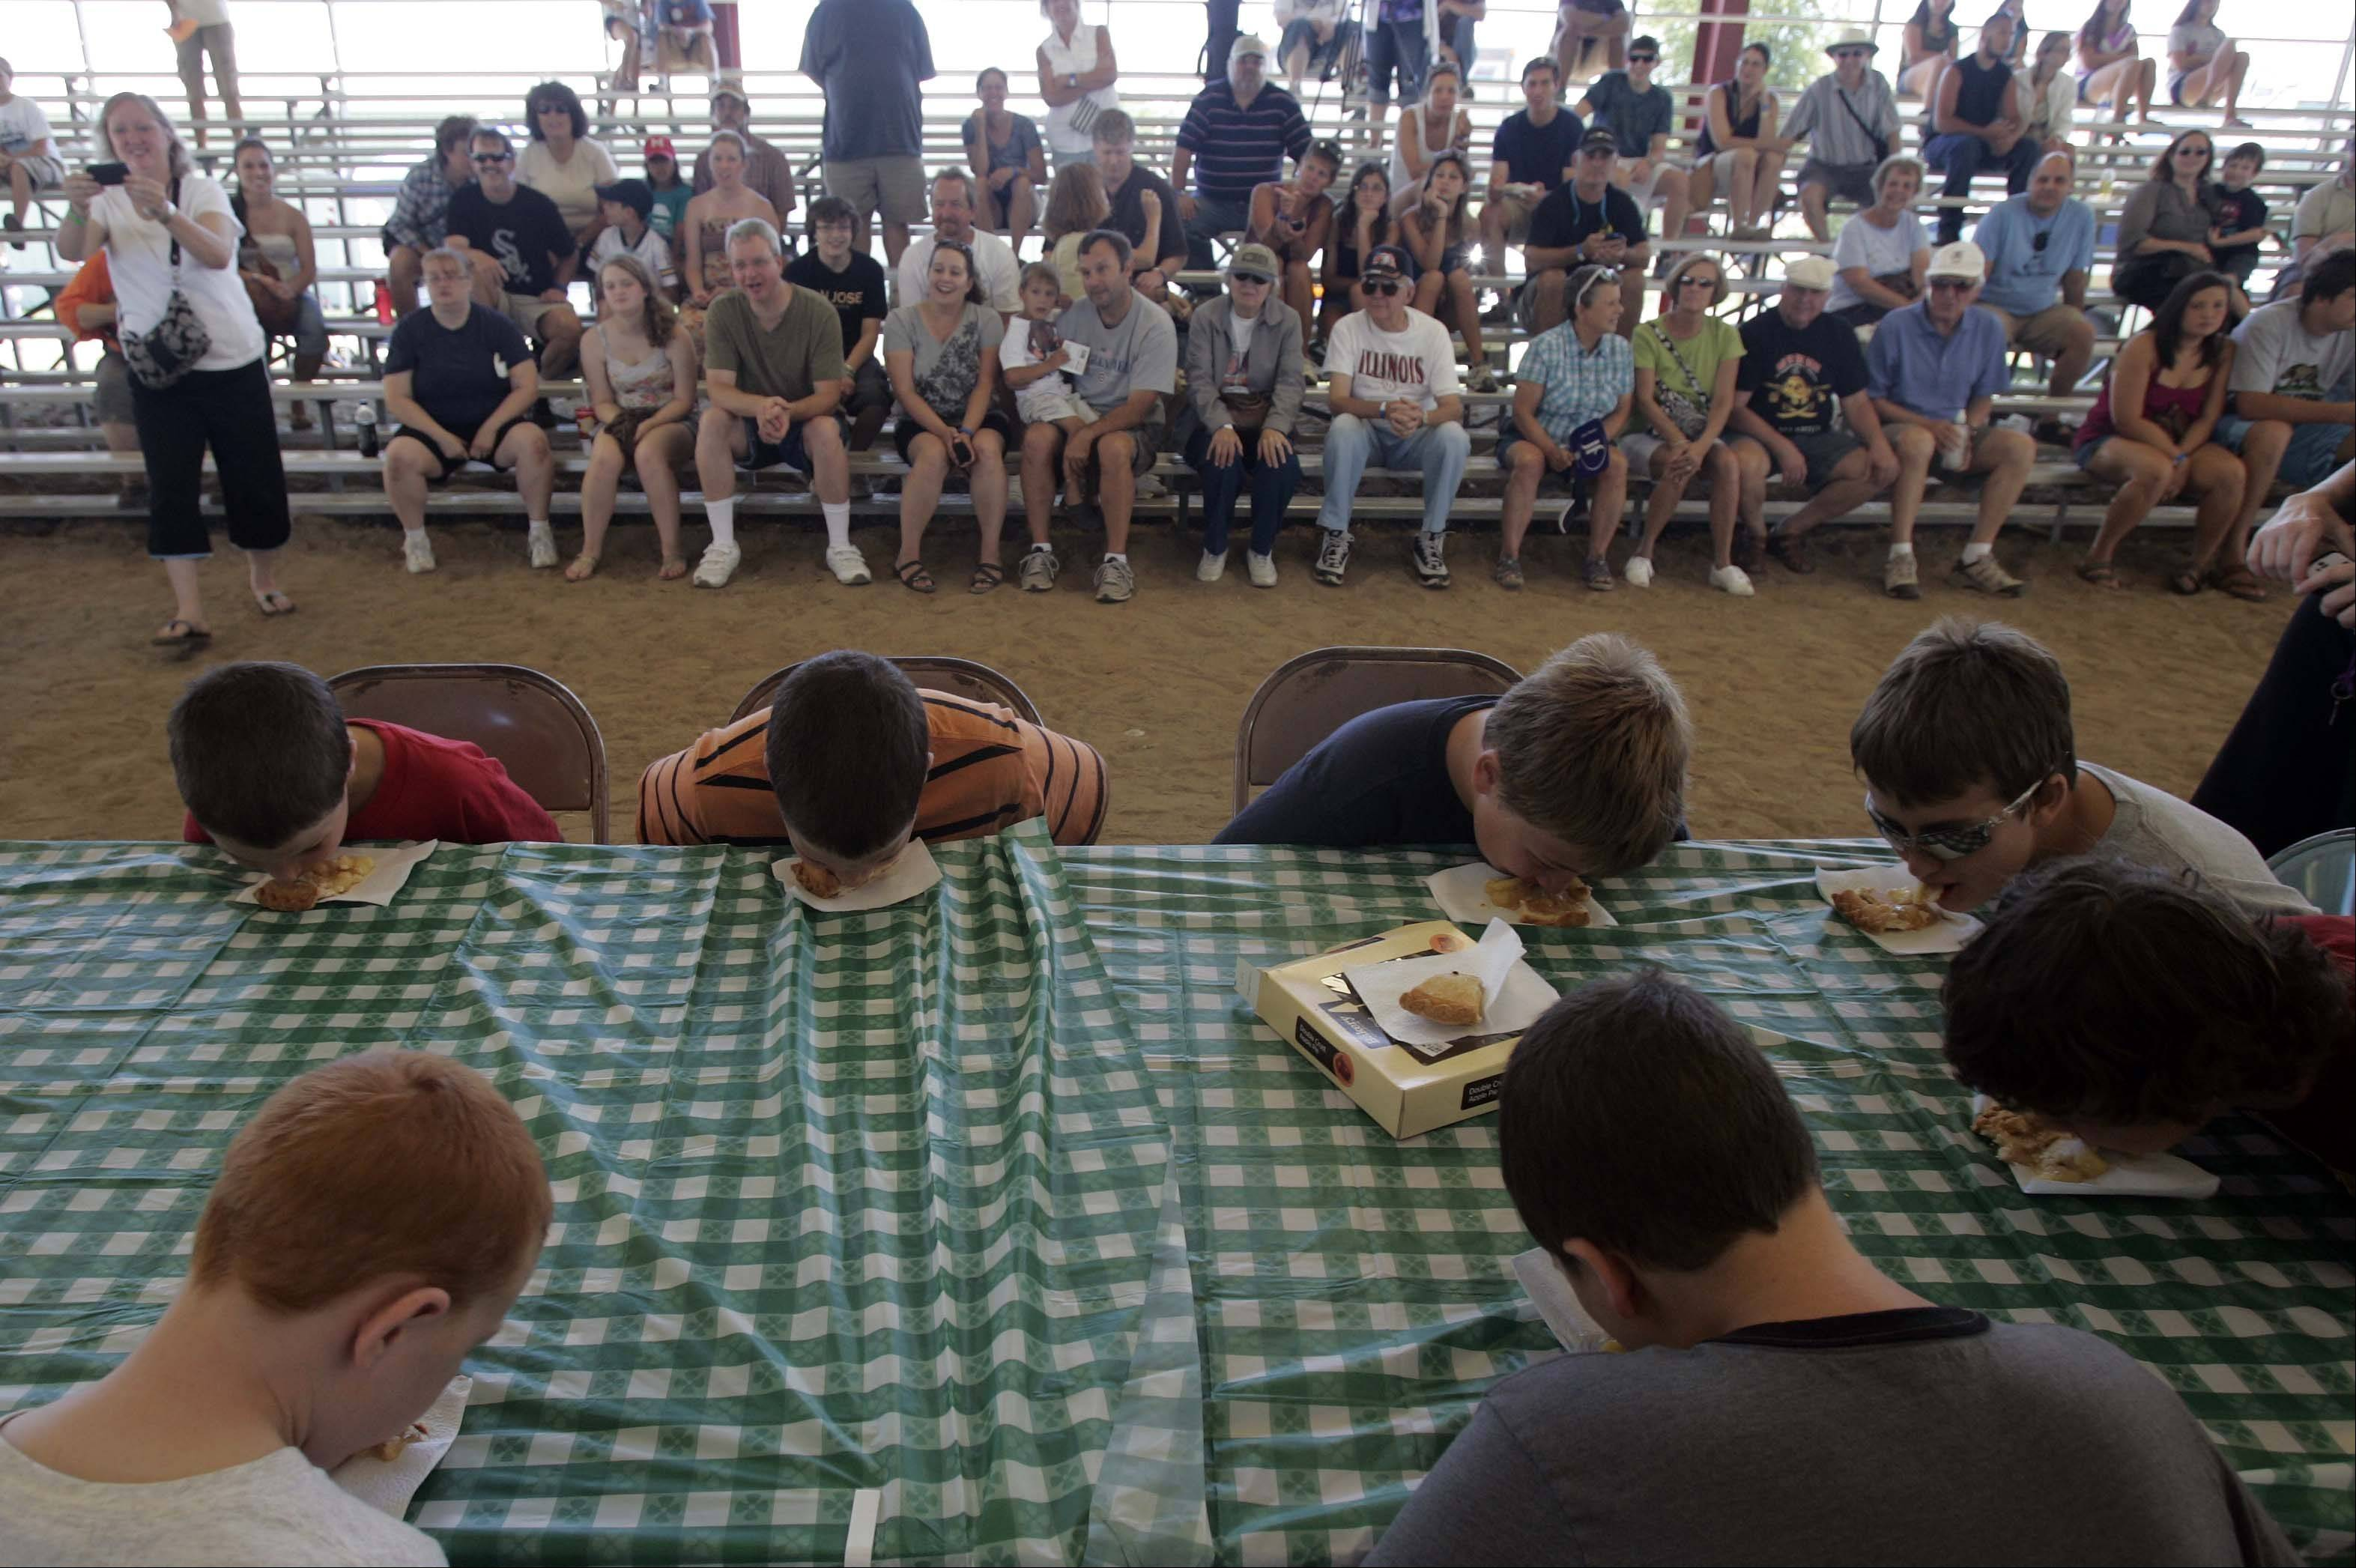 The six to twelve year-olds get a face full of pie during the pie eating contest at the McHenry County Fair Sunday August 5, 2012 in Woodstock.